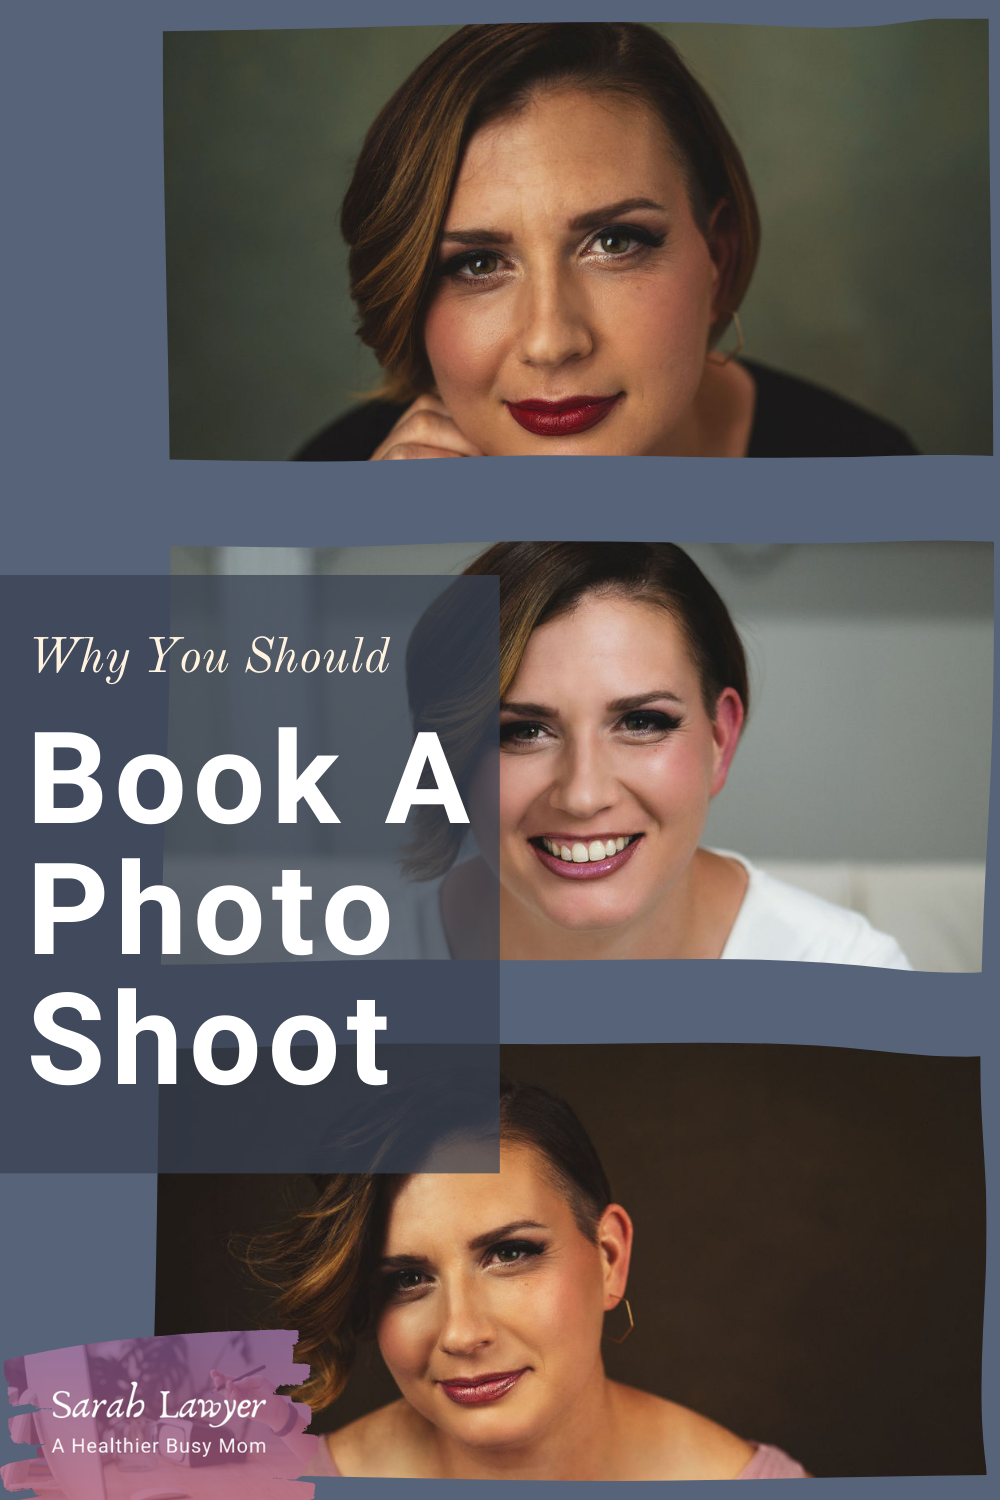 3 reasons Why you should book a photo shoot. Ever wonder if you should book a photo shoot with a professional photographer? Is it really worth it? YES! And I am going to give you 3 reasons why.